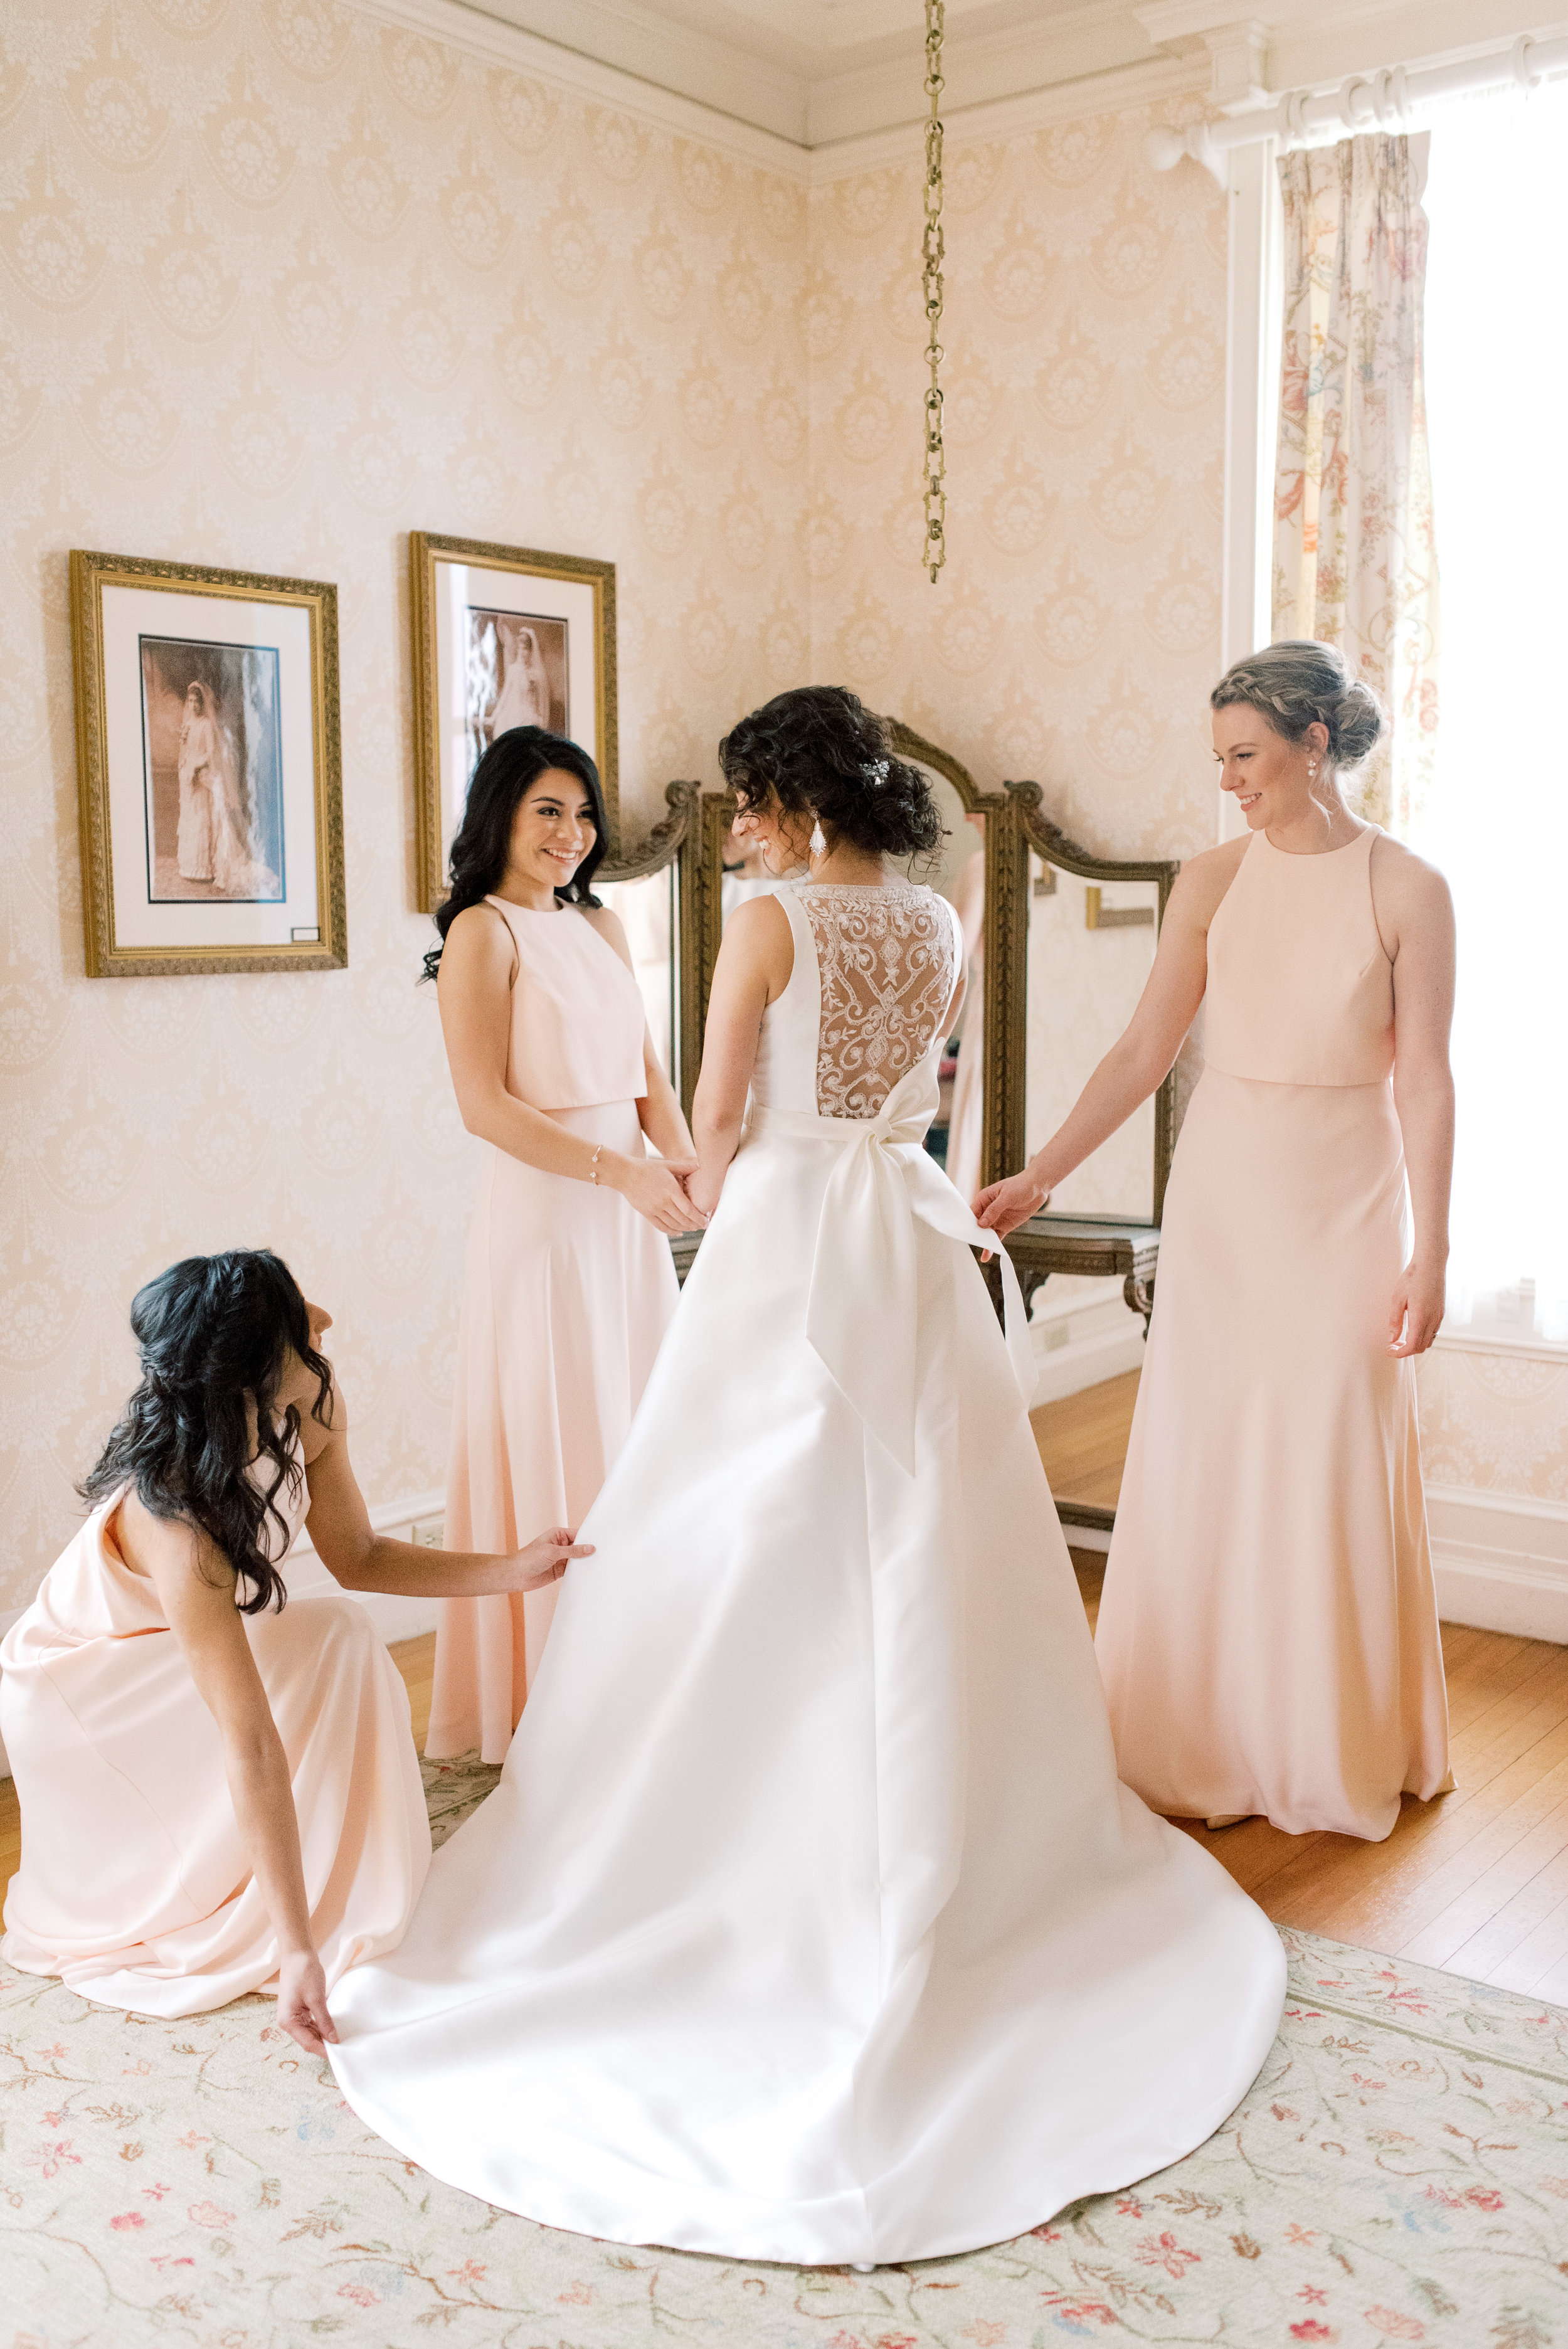 We loved the way these blush pink bridesmaids dresses gave a feminine touch to this get ready photograph of our beautiful bride getting into her modern a-line dress for her romantic and classic wedding day for their french inspired green and white Cairnwood Estate wedding